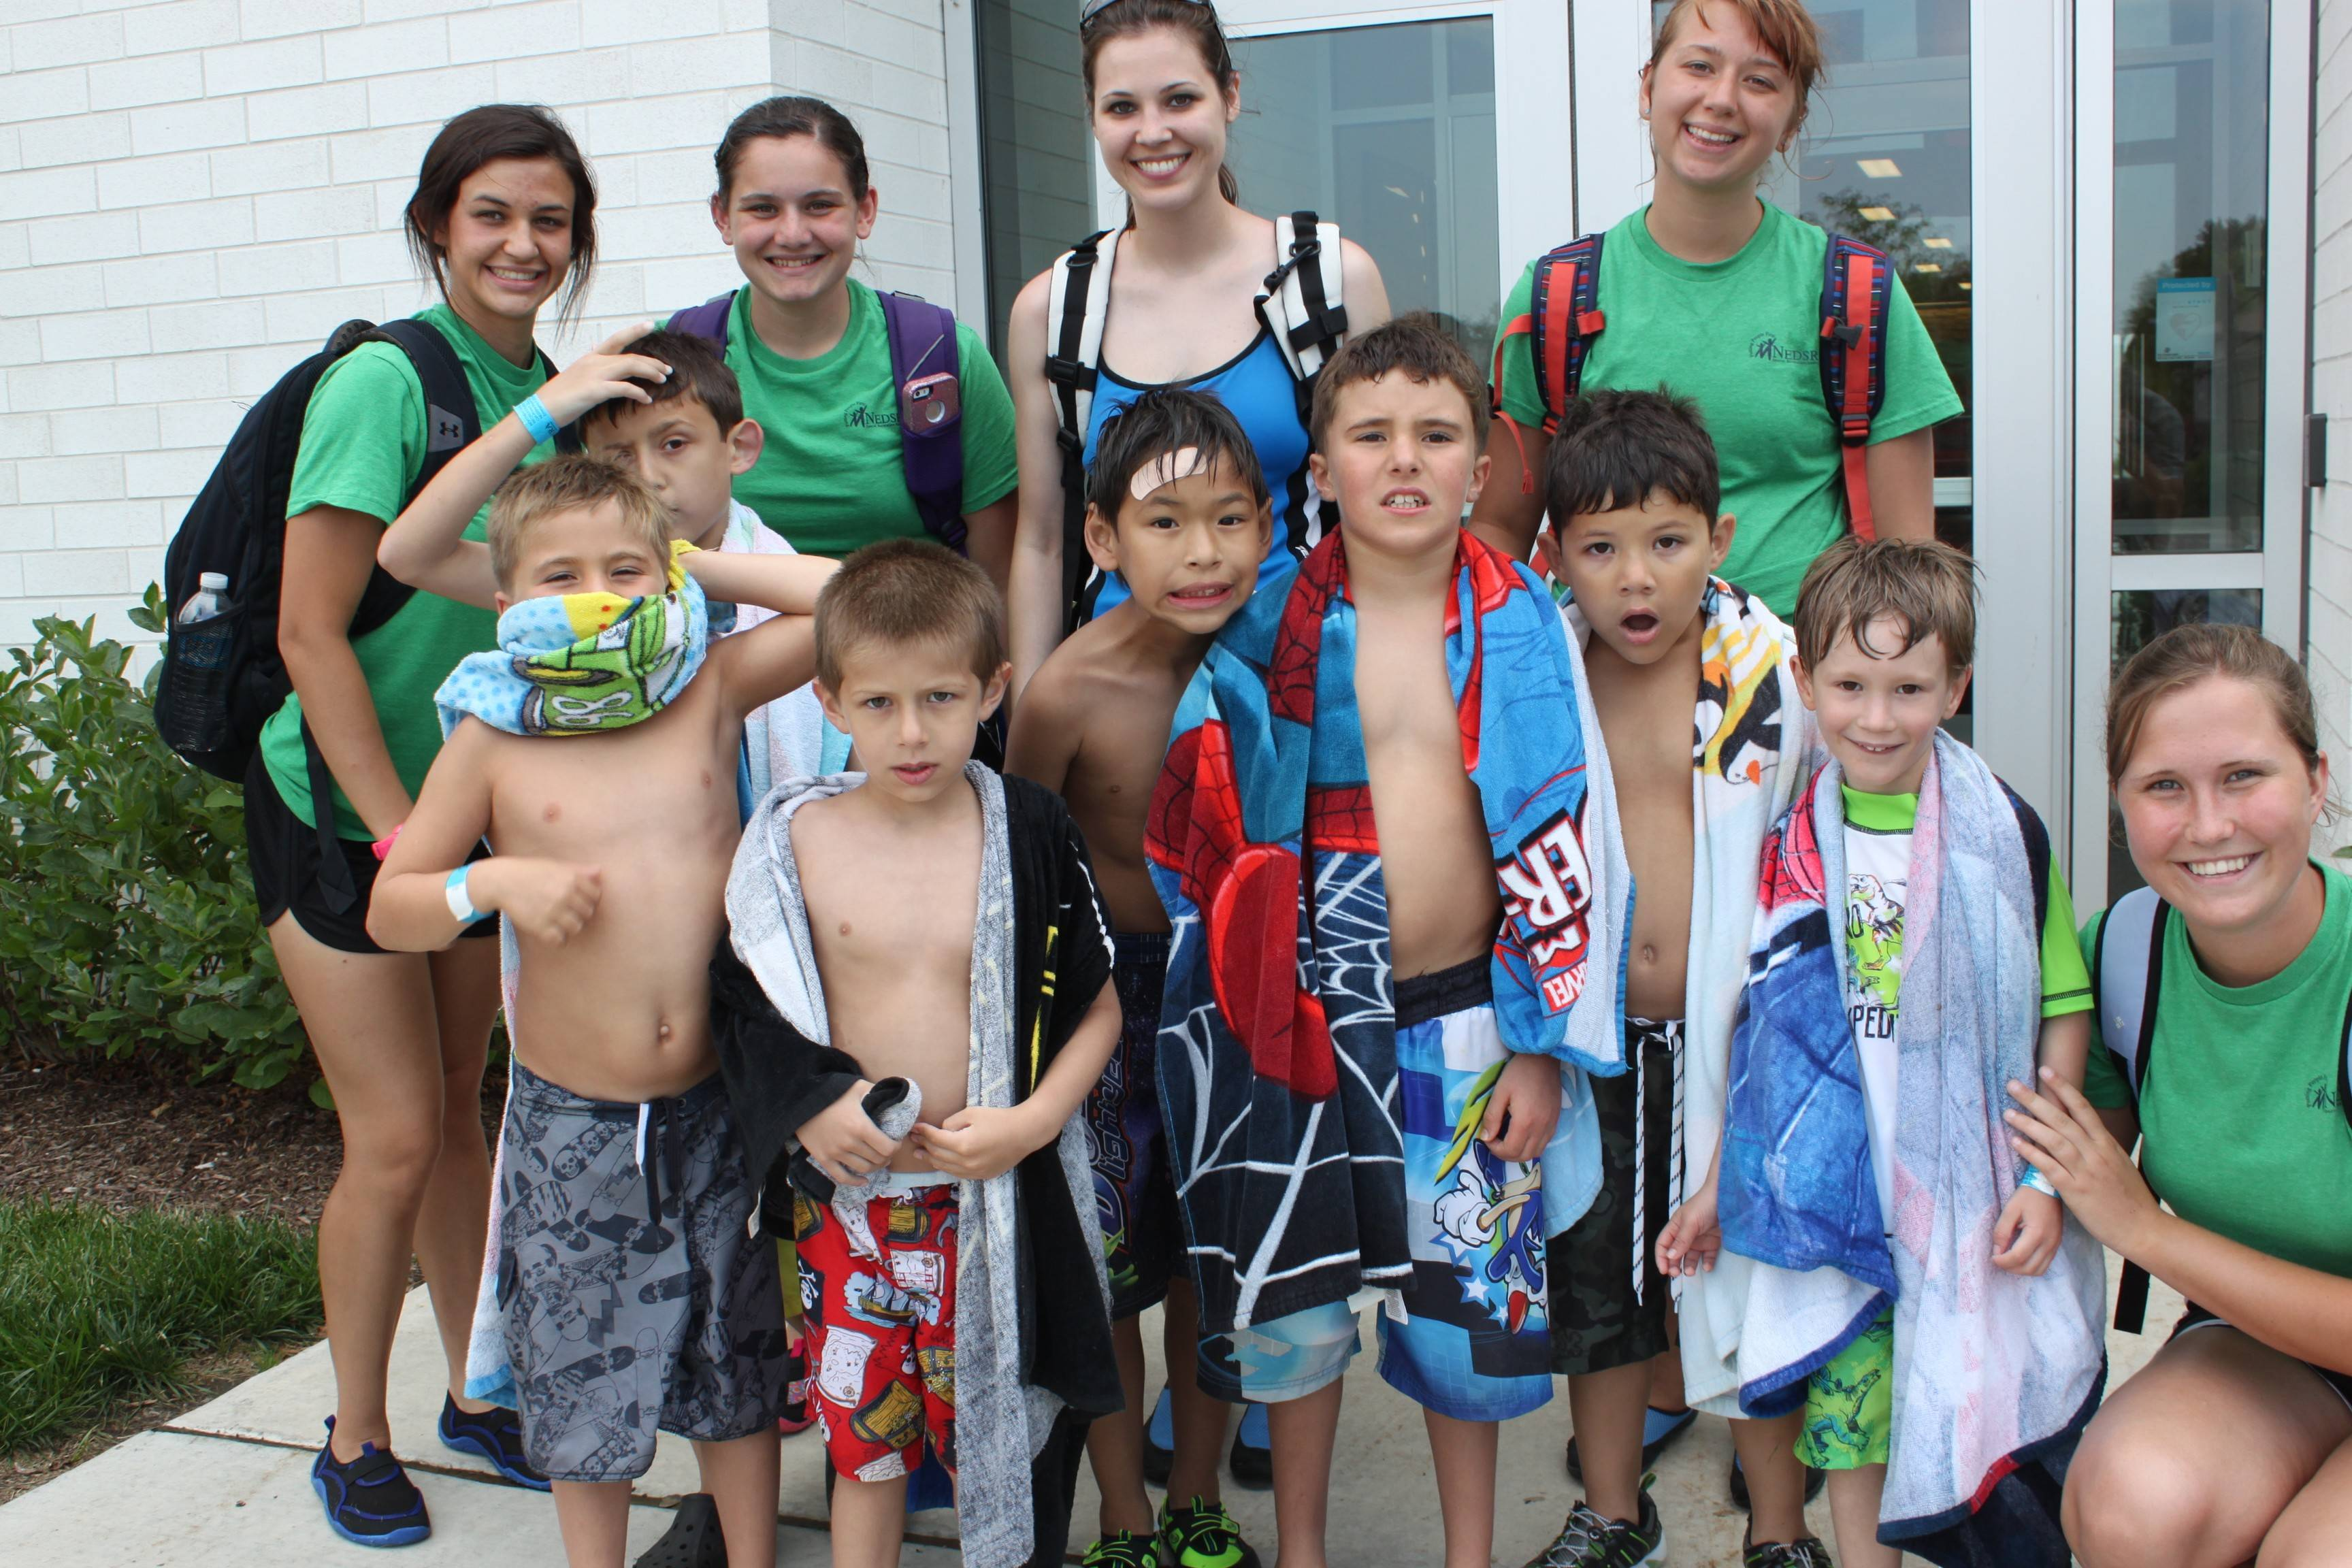 Camp leader Erin Mikulecky, back row wearing a blue shirt, and her staff are keeping campers with special needs busy with trips to pools and other activities in the Little Explorer summer day camp.